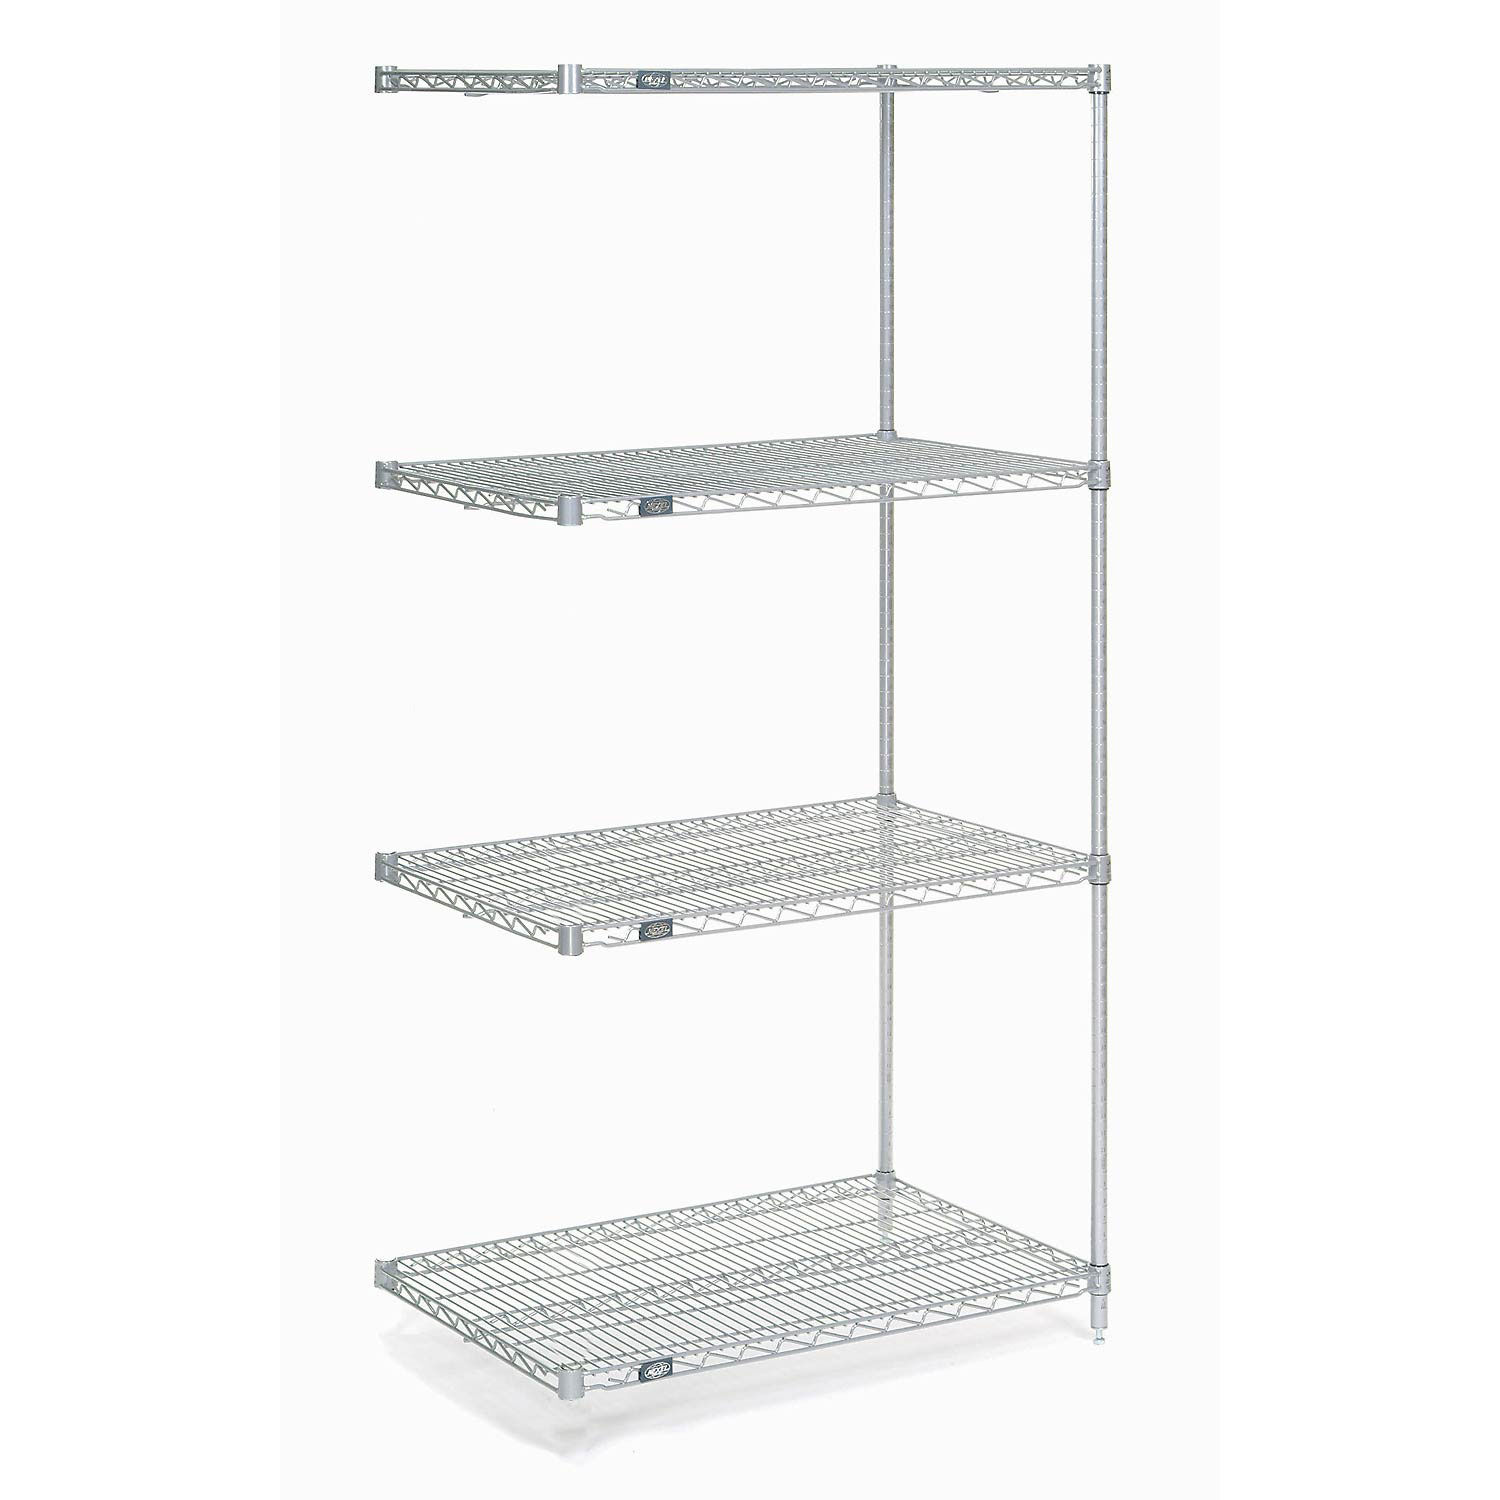 Details About Nexel Wire Shelving Add On Poly Z Brite 42 W X 21 D X 54 H